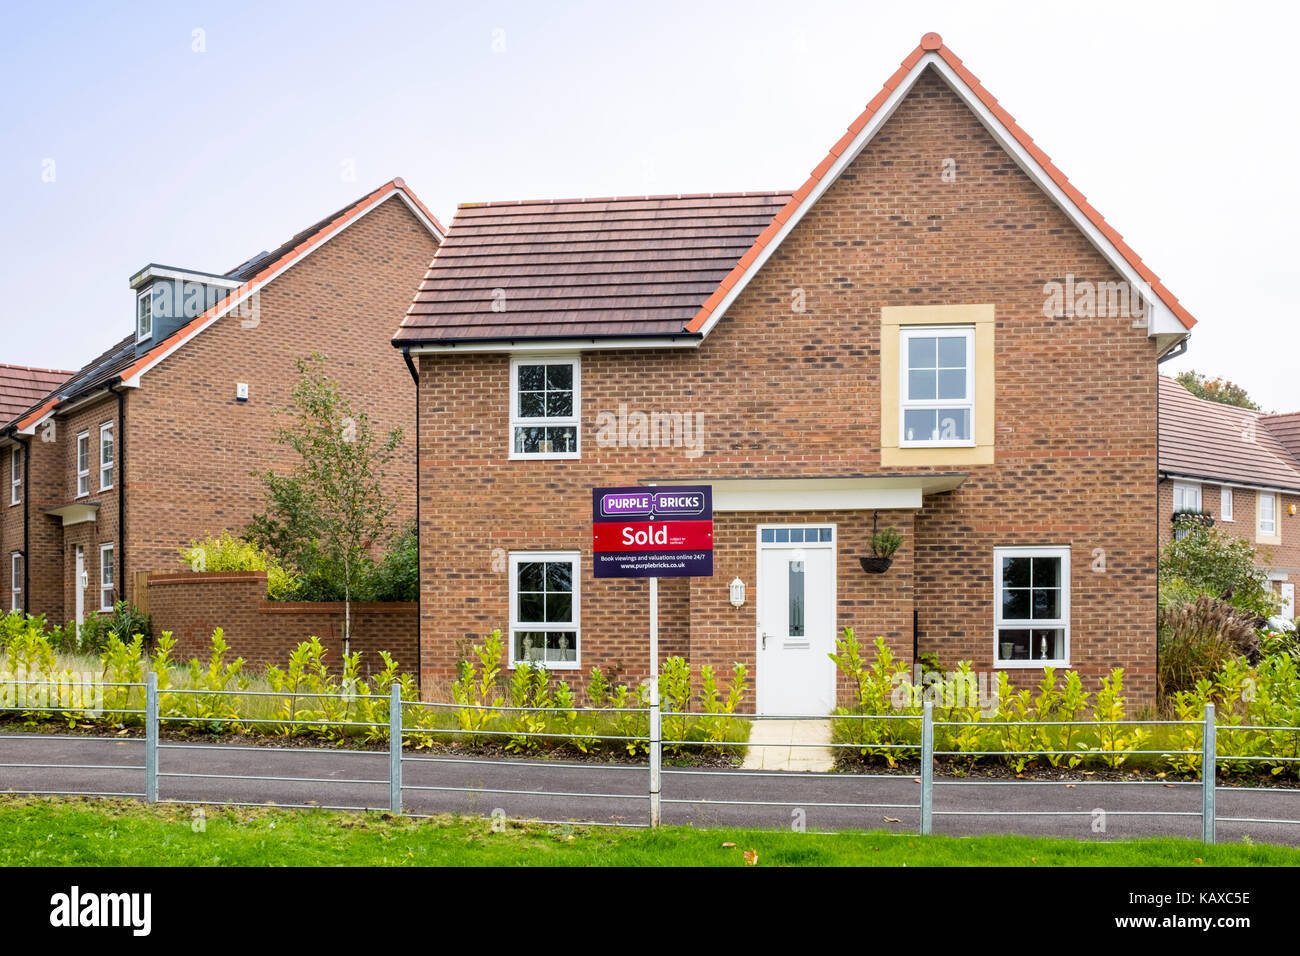 Purple Bricks sold estate agent sign in front of new build house UK - Stock Image